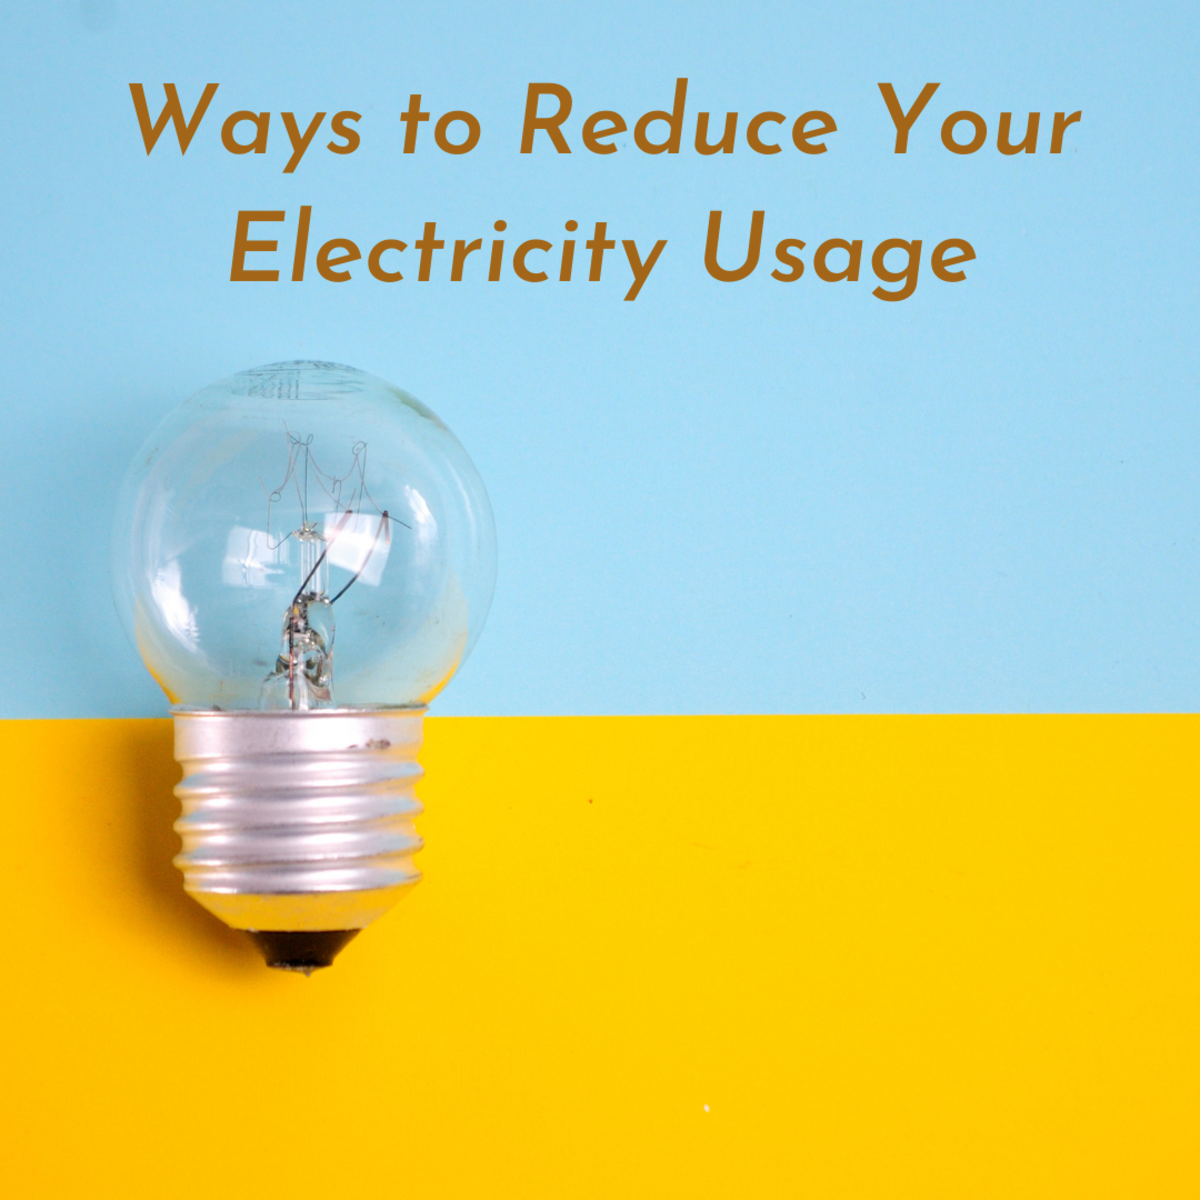 Ways you can use less electricity